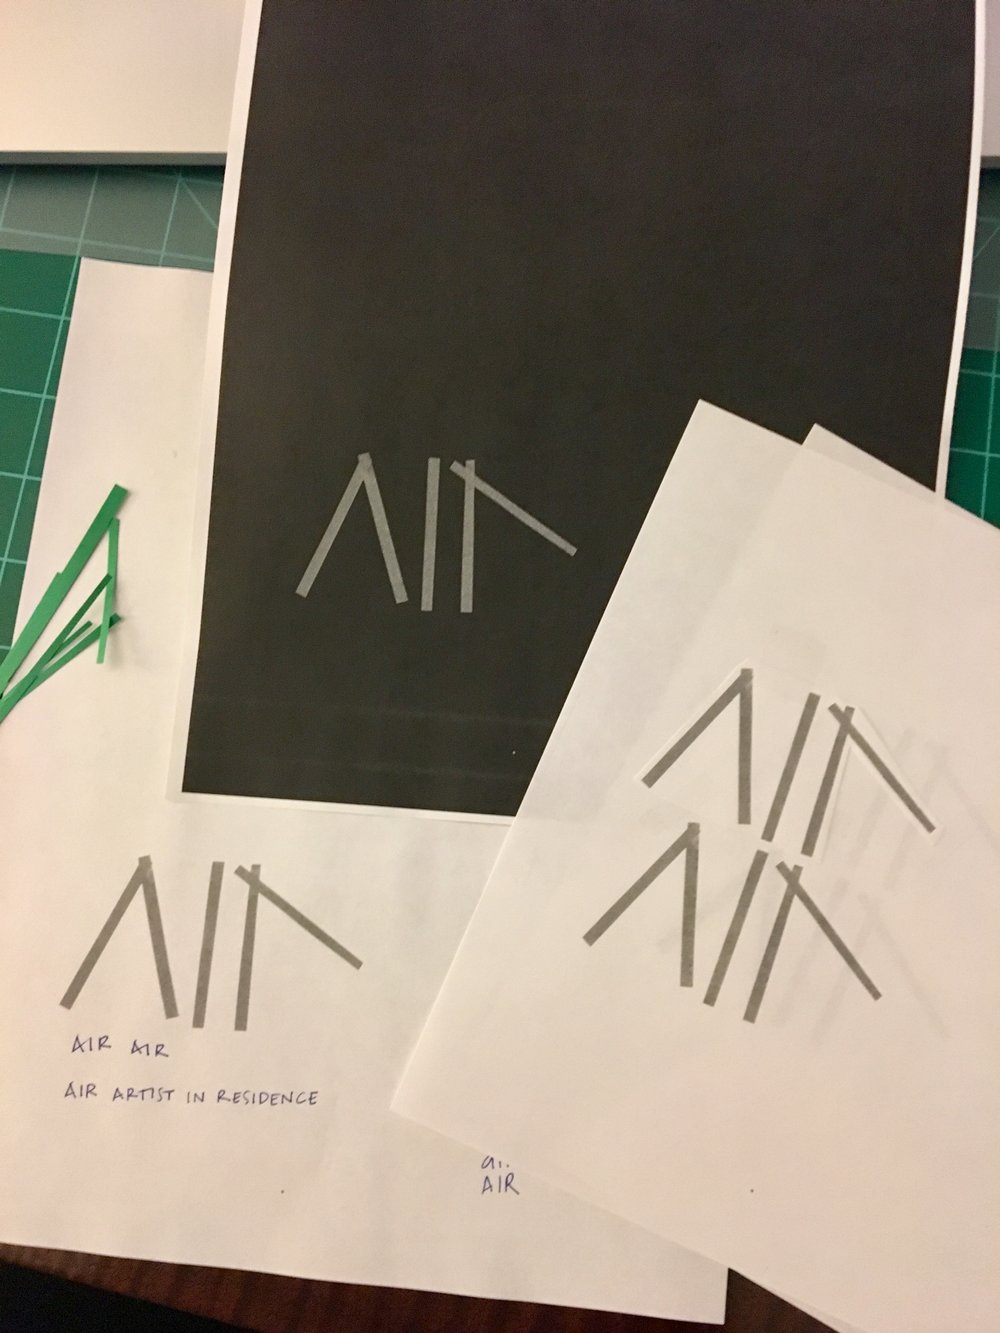 Air Air // logo development, in progress